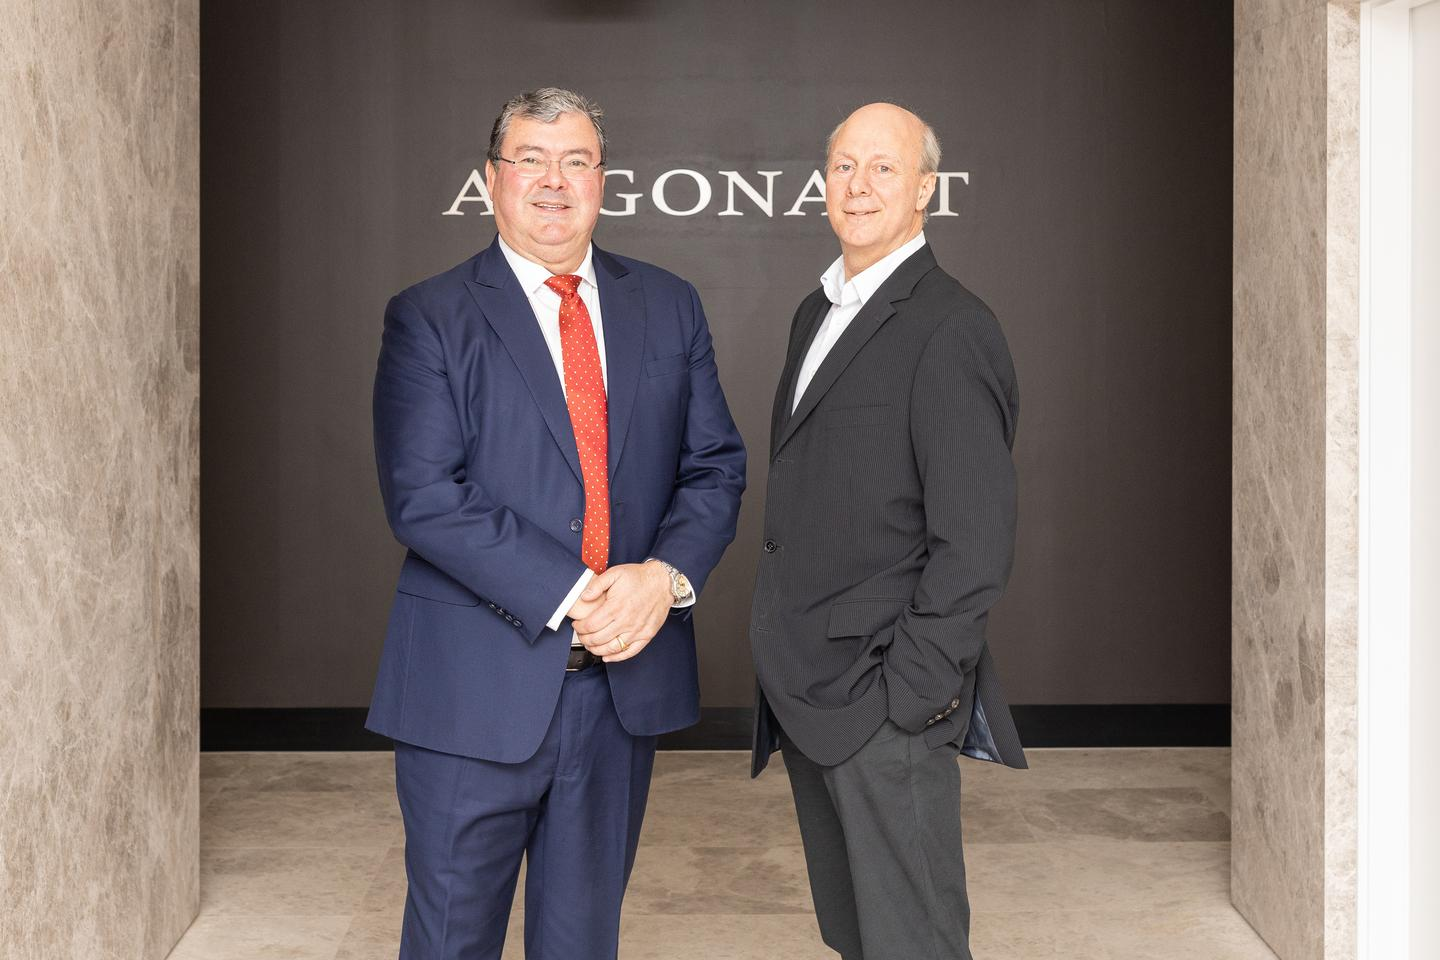 Argonaut back into funds management